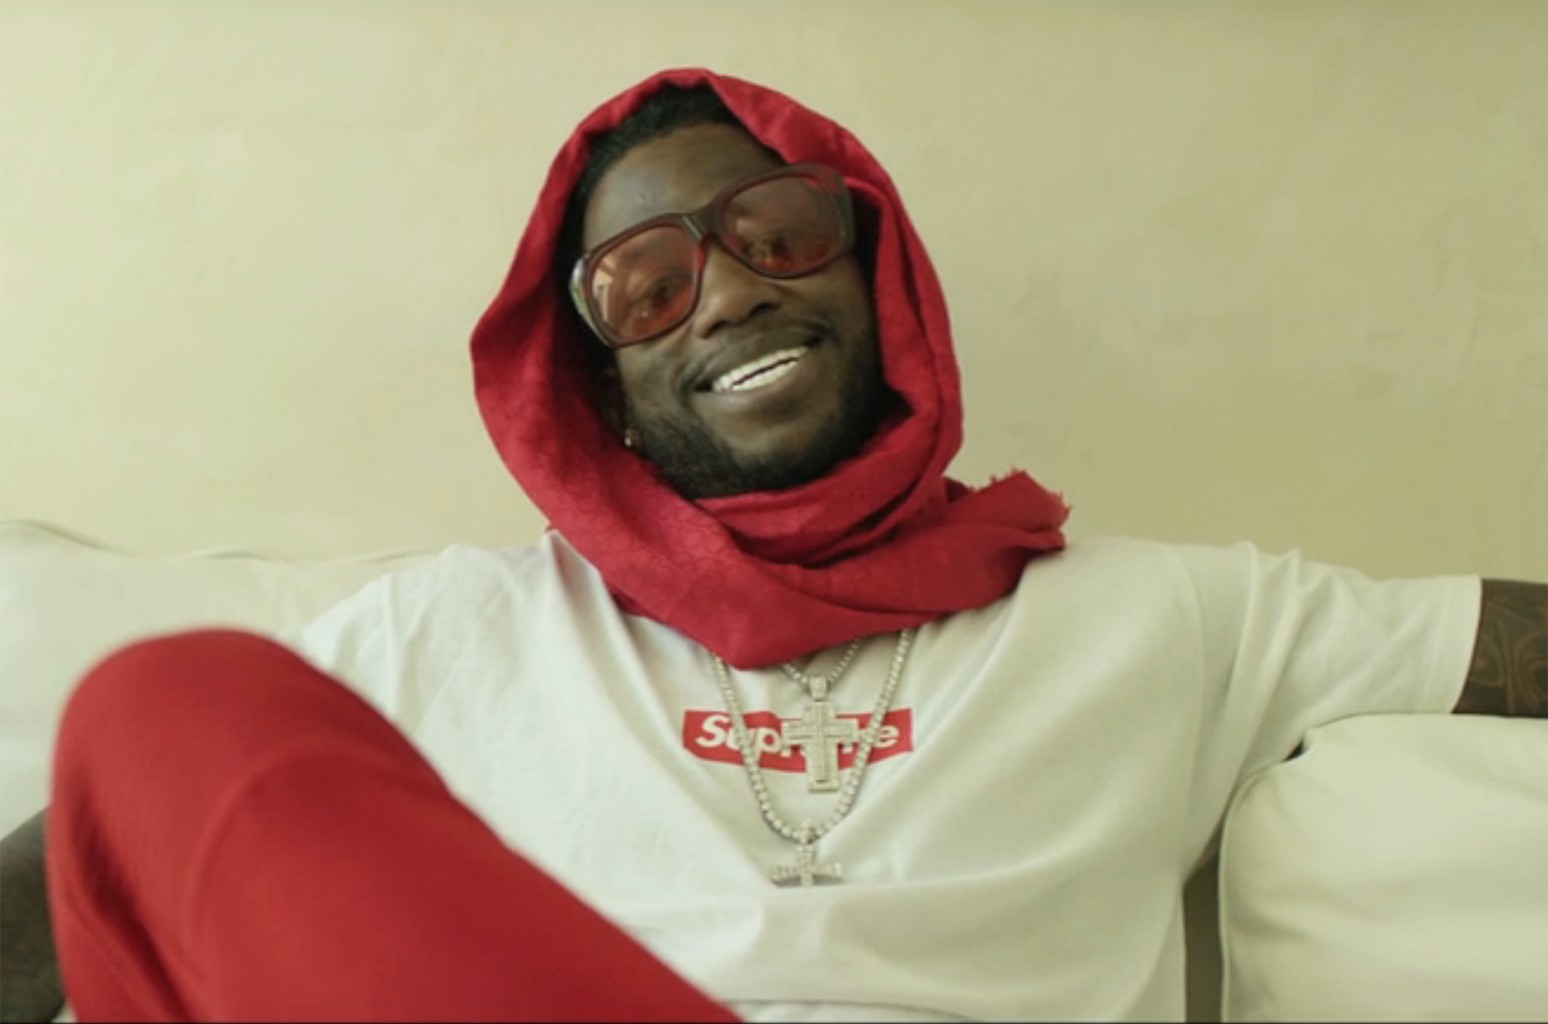 Gucci Mane in an ad for Supreme